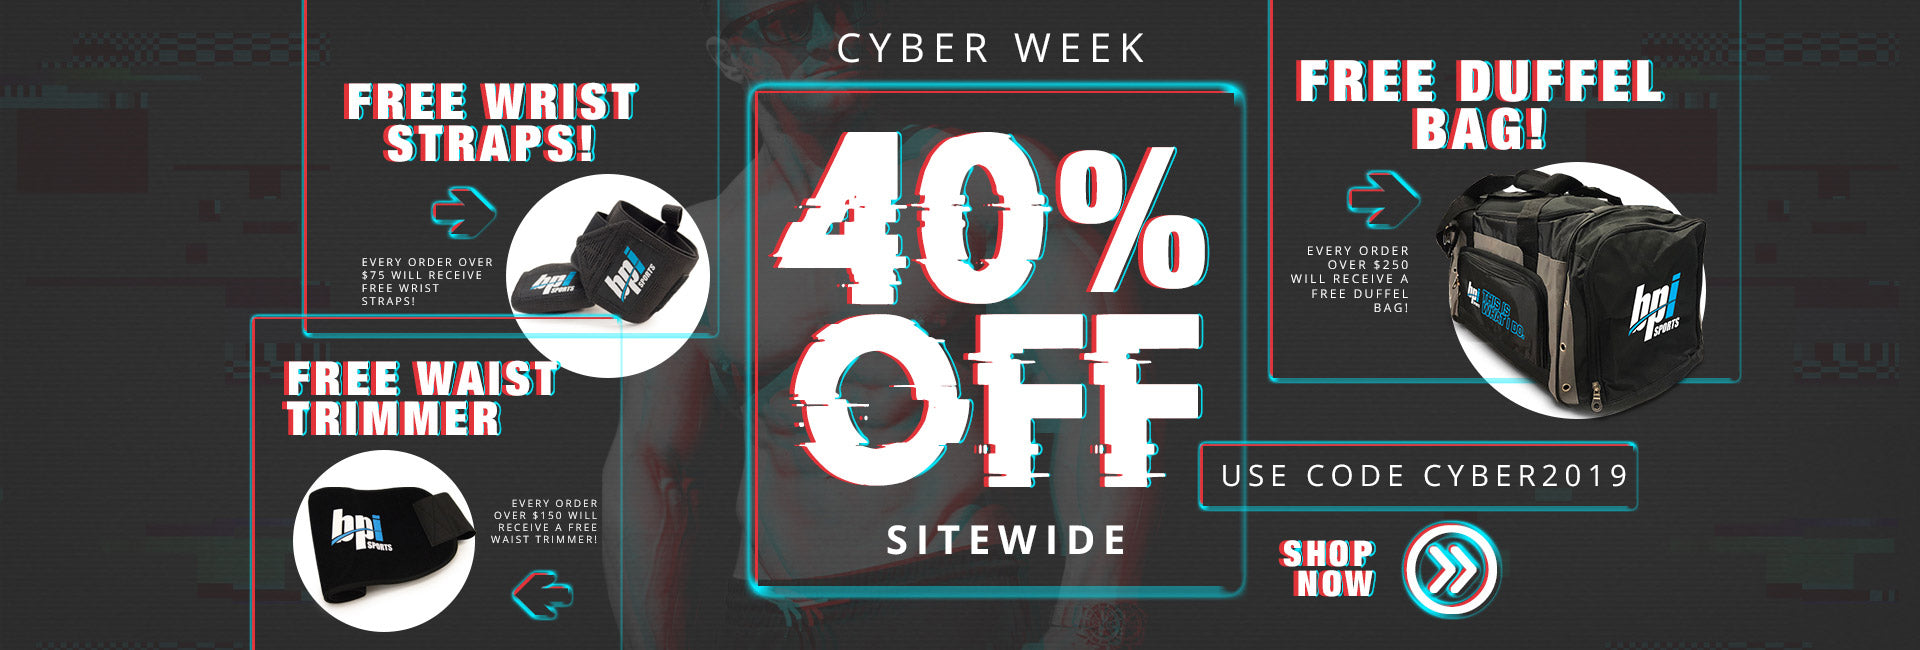 Cyber Week! 40% Off Sitewide + Freebies!